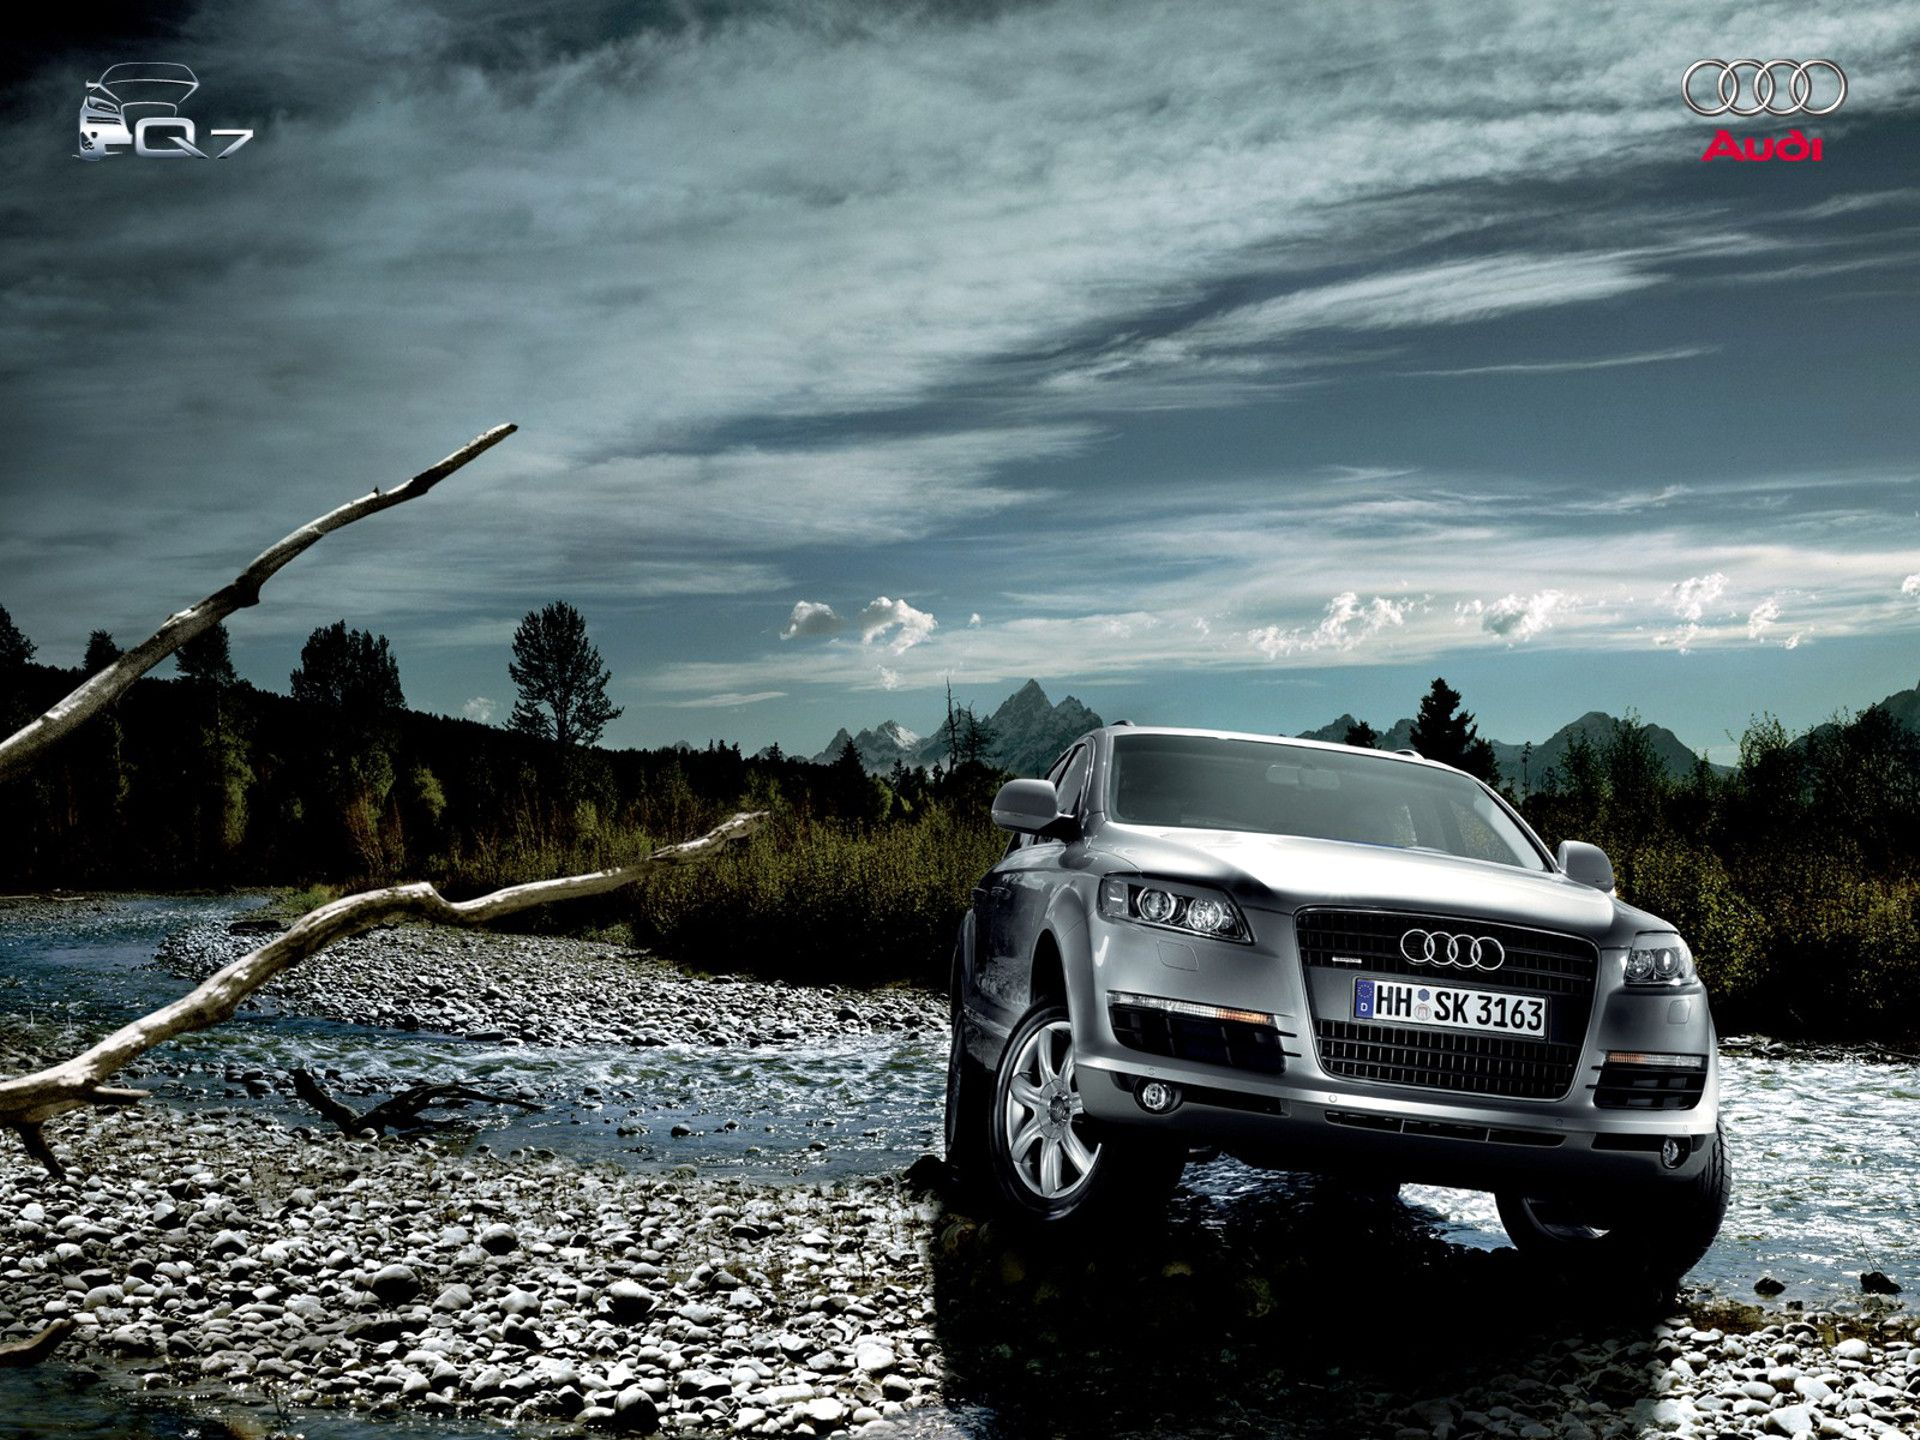 Audi Q7 In Nature Hd Wallpaper And More Car Pictures On Www